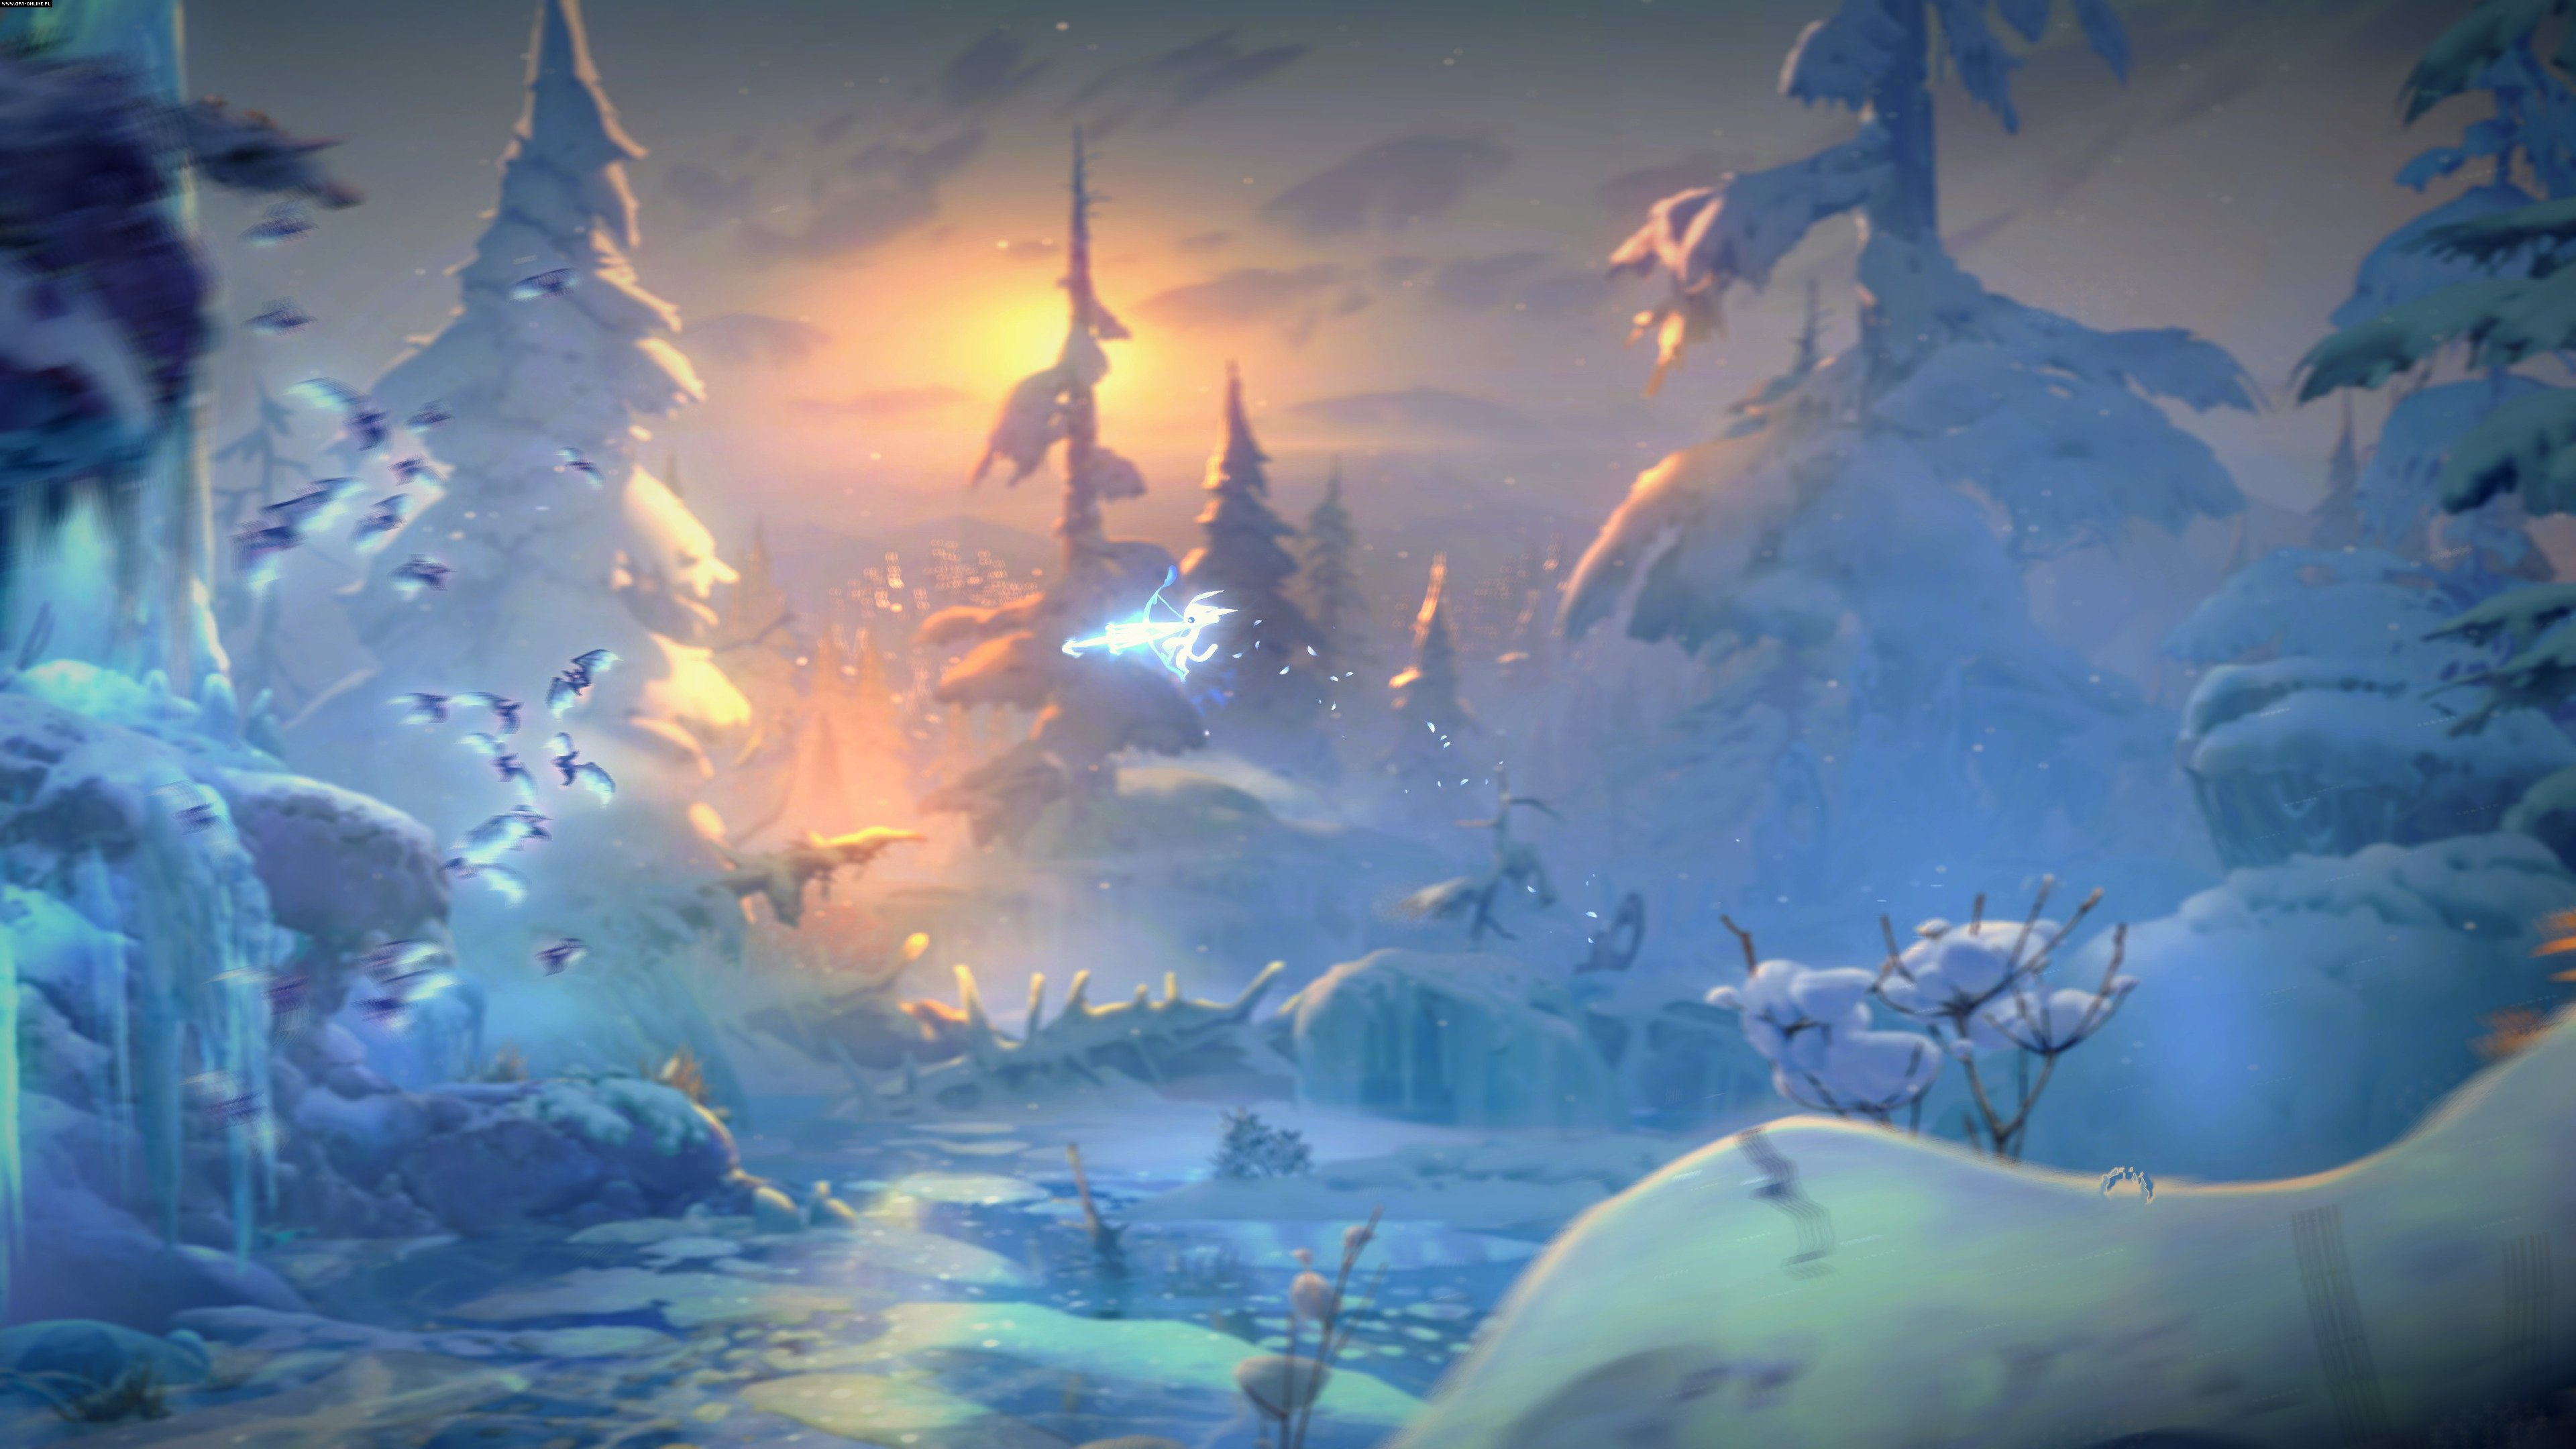 Ori and the Will of the Wisps PC, XONE Games Image 1/11, Moon Studios, Xbox Game Studios / Microsoft Studios